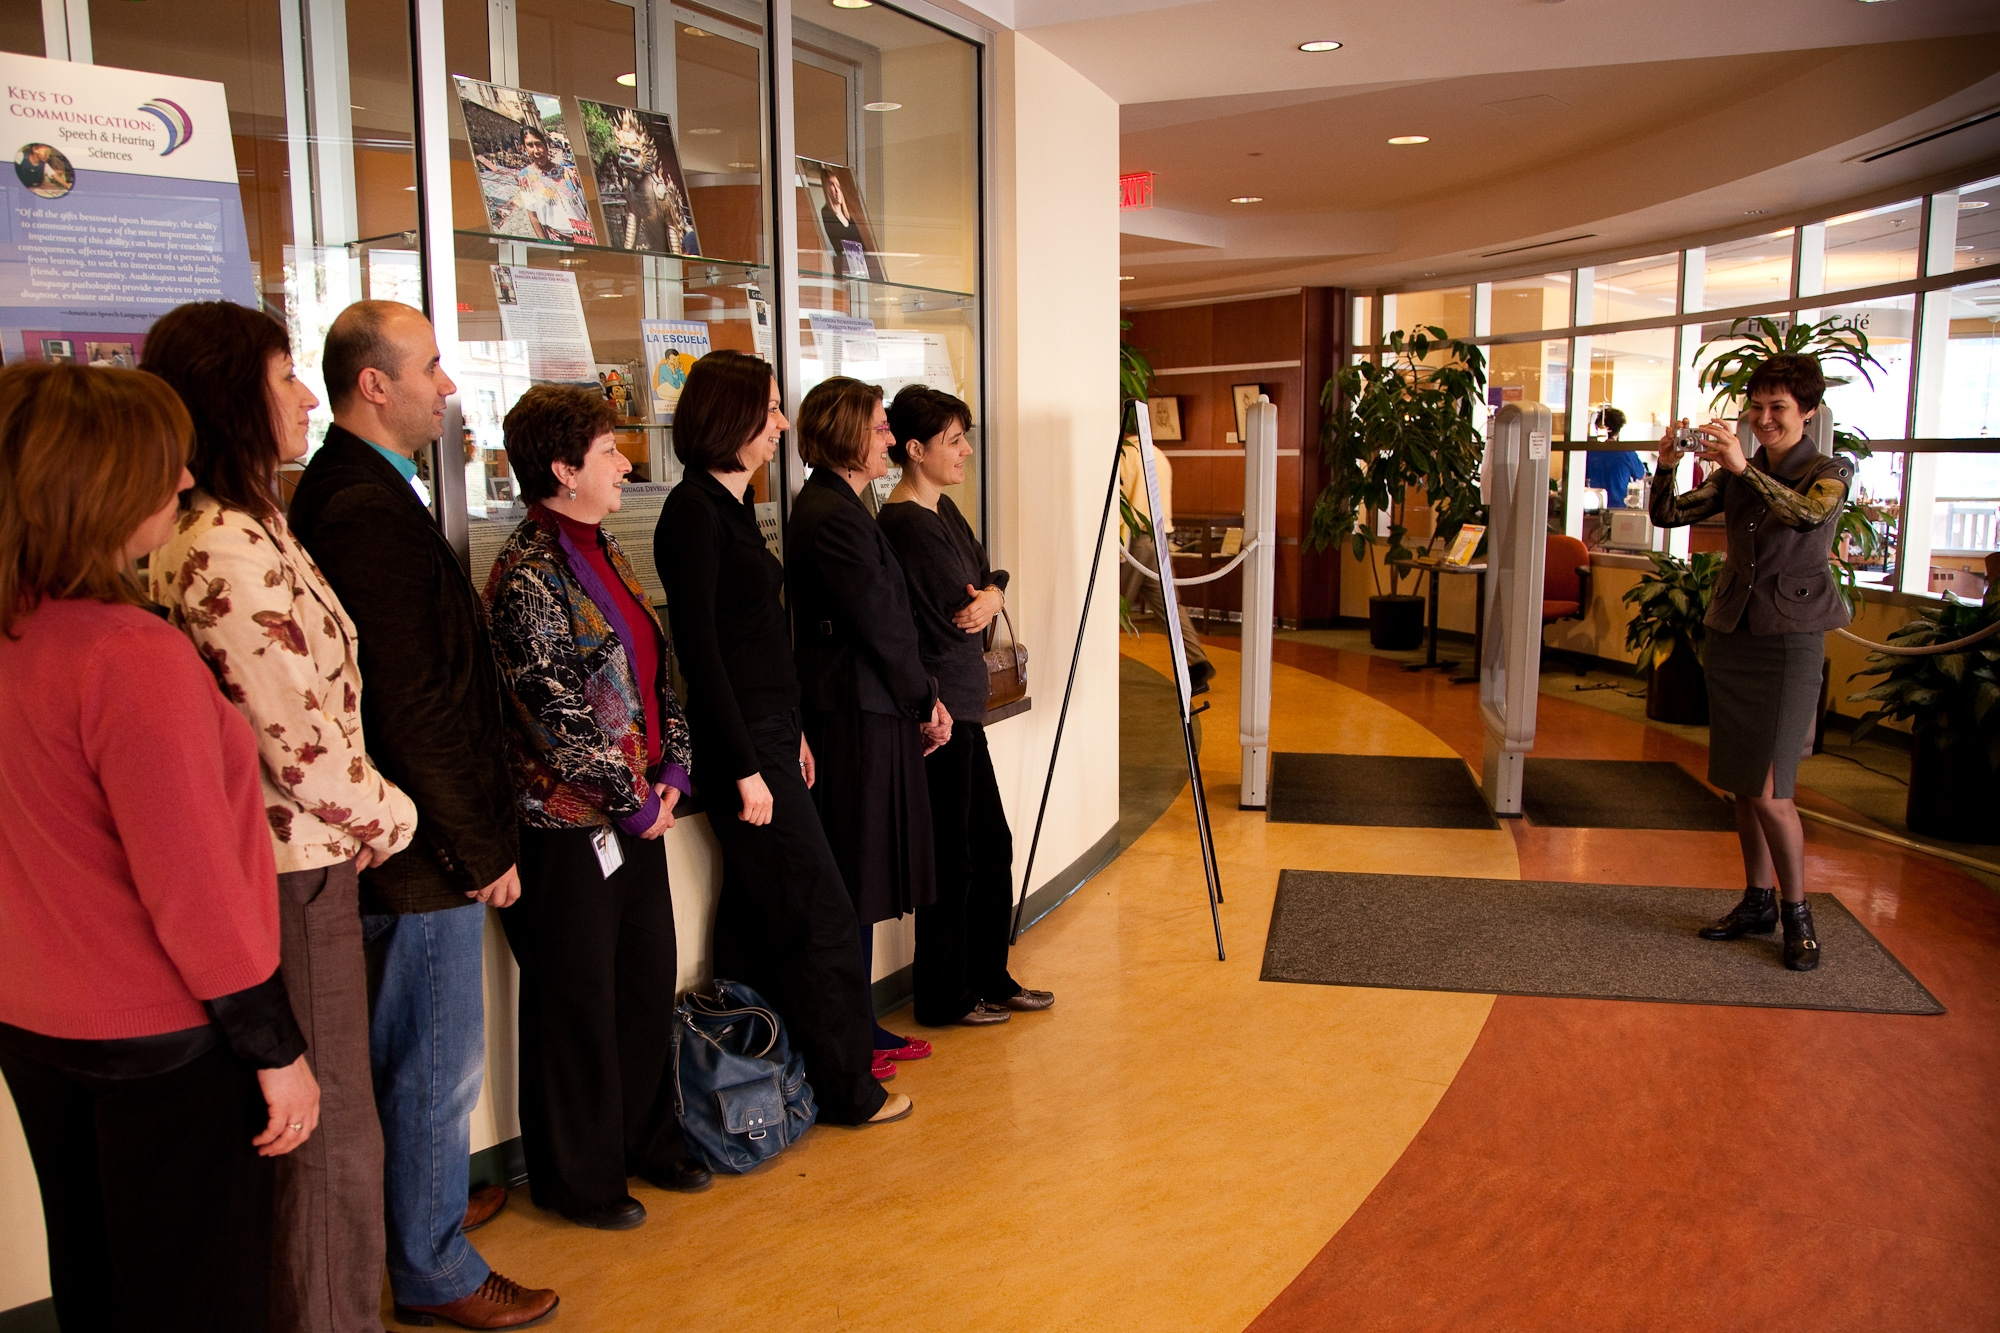 International Visitors to Keys to Communication Exhibit Celebrating Speech and Hearing Sciences 40th Anniversary March through October 2010